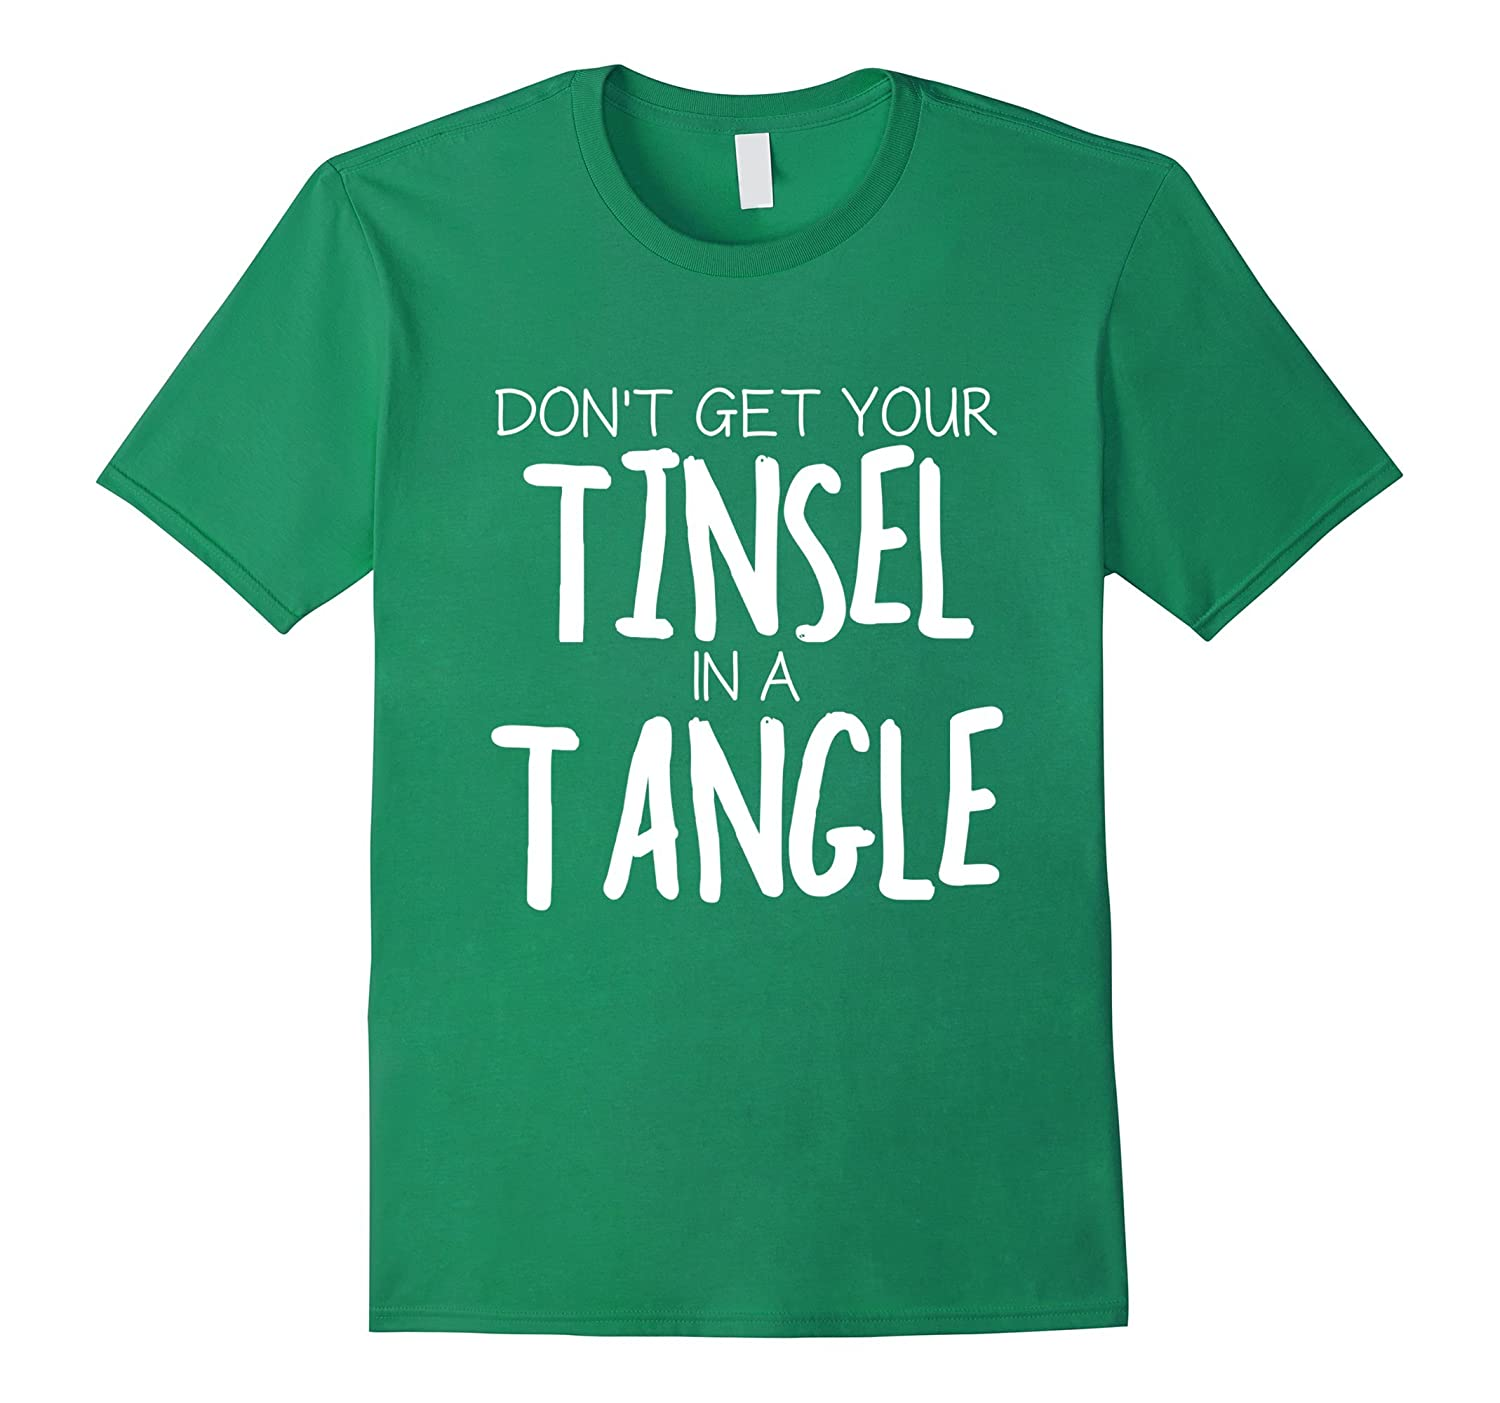 Christmas Humor DON'T GET YOUR TINSEL IN A TANGLE T-shirt